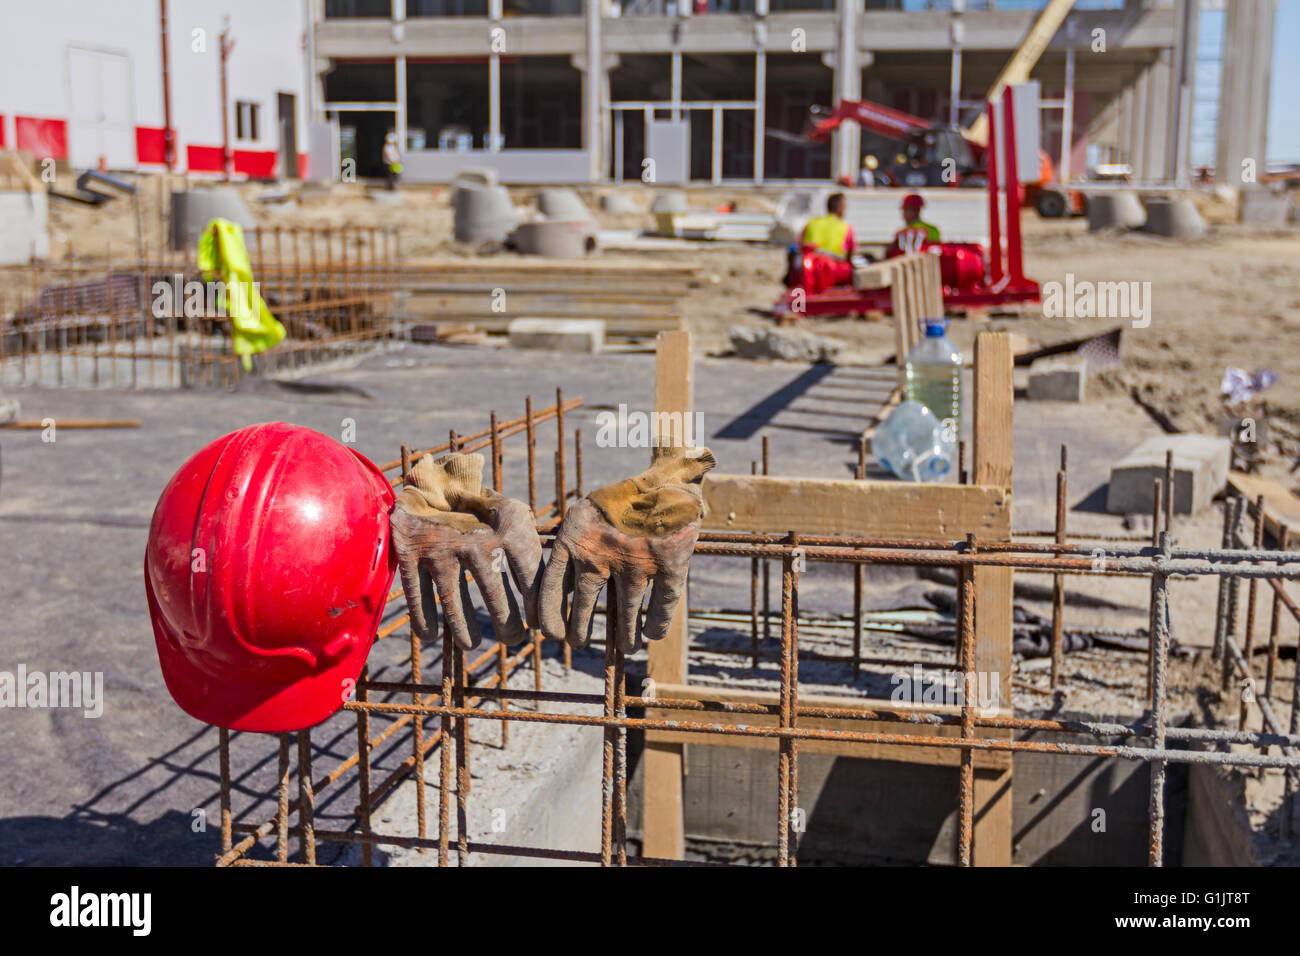 Safety equipment has been put down with construction site background. - Stock Image